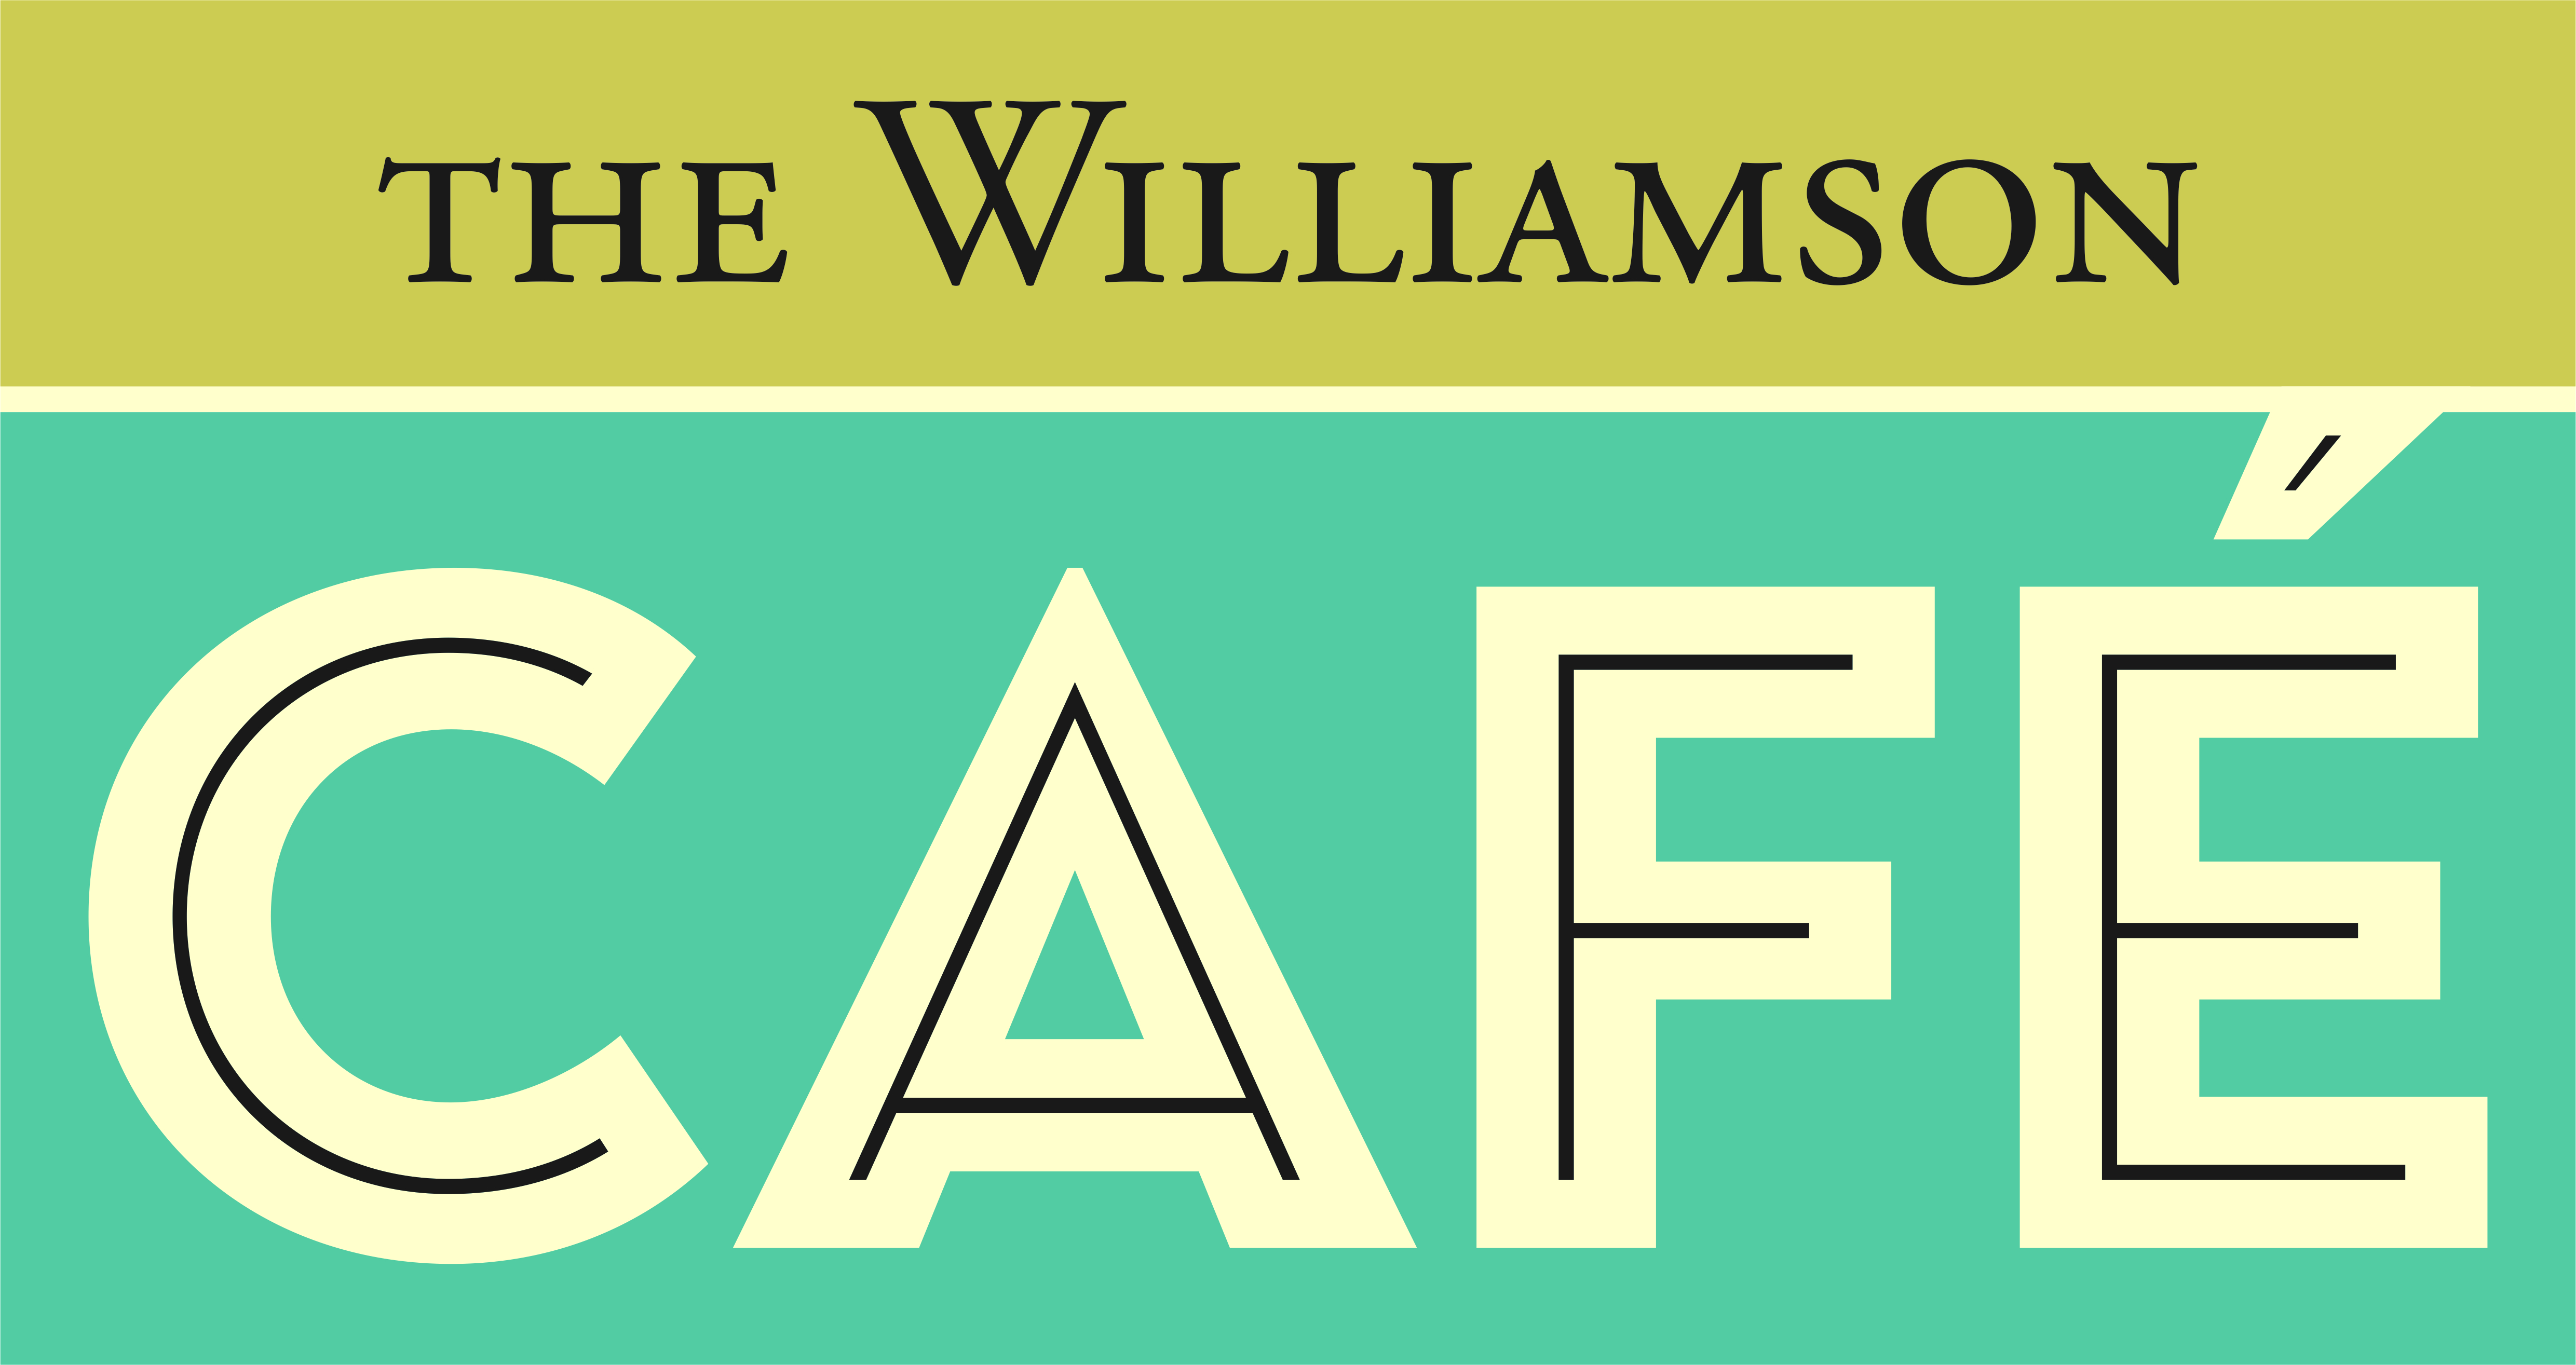 The Williamson Cafe